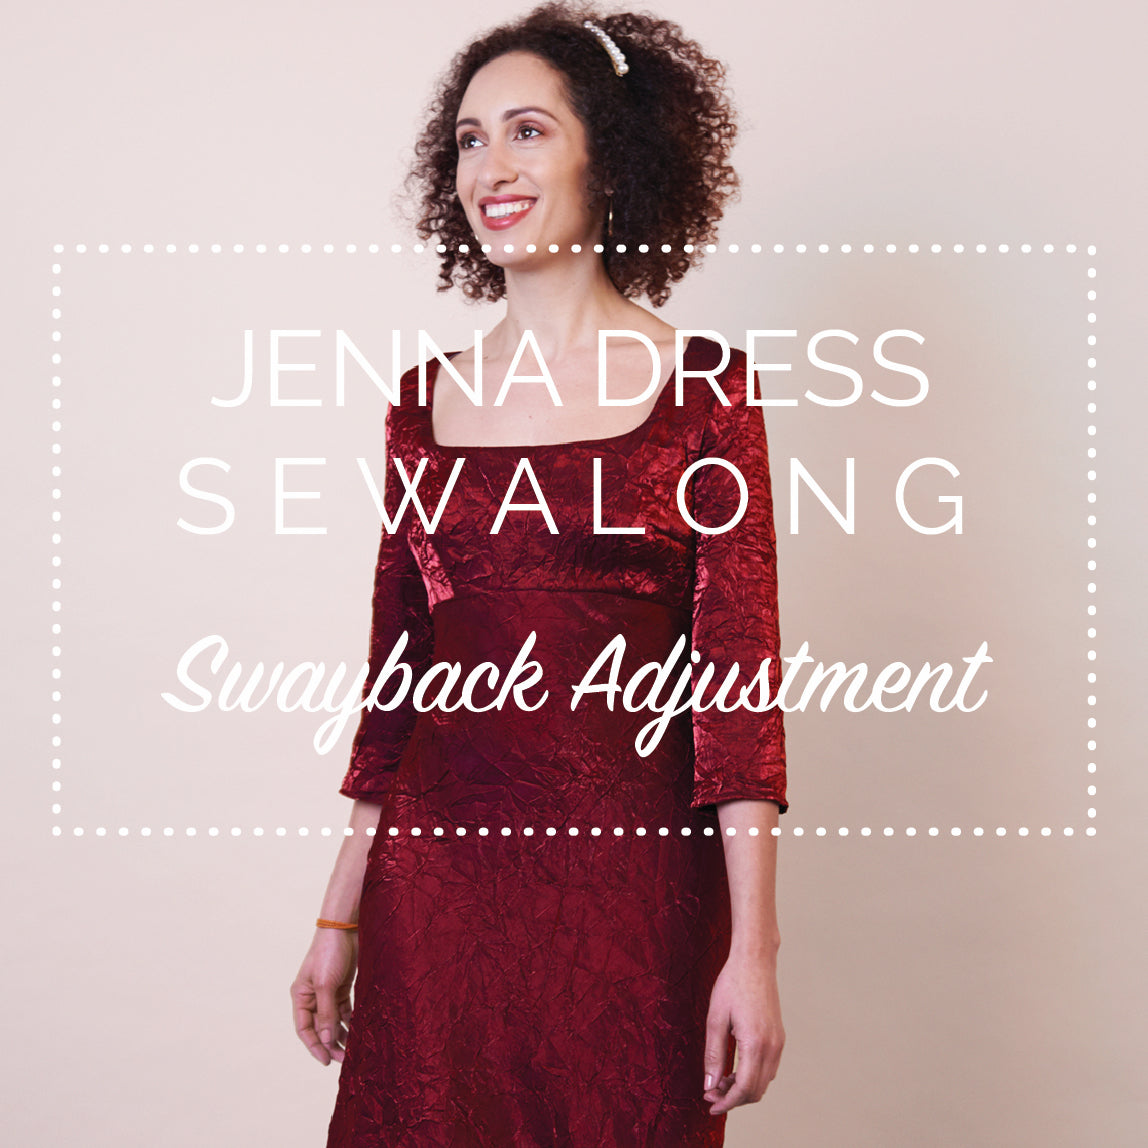 Jenna Dress Sewalong - Swayback adjustment